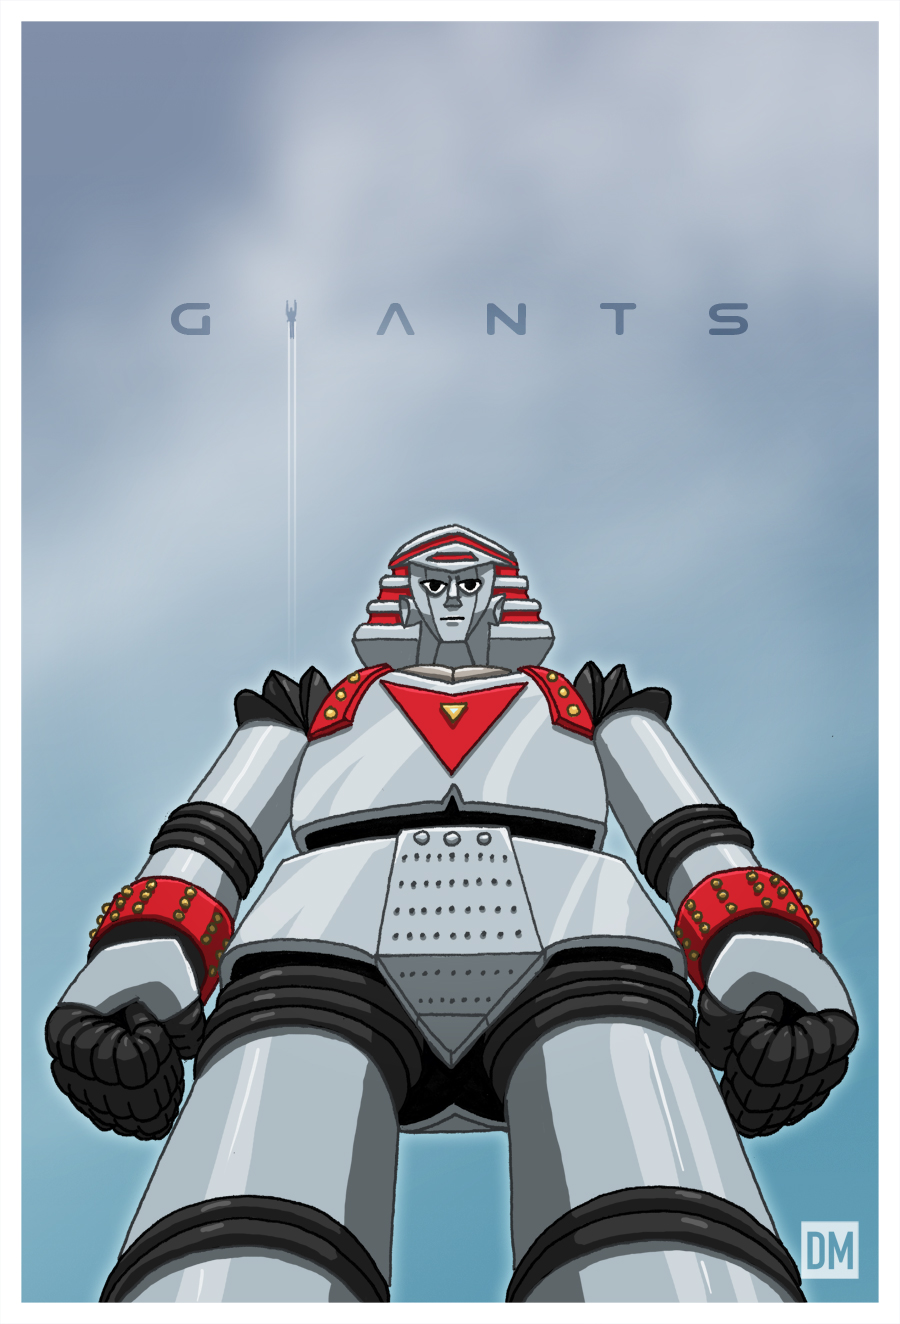 Giants - Giant Robo by DanielMead